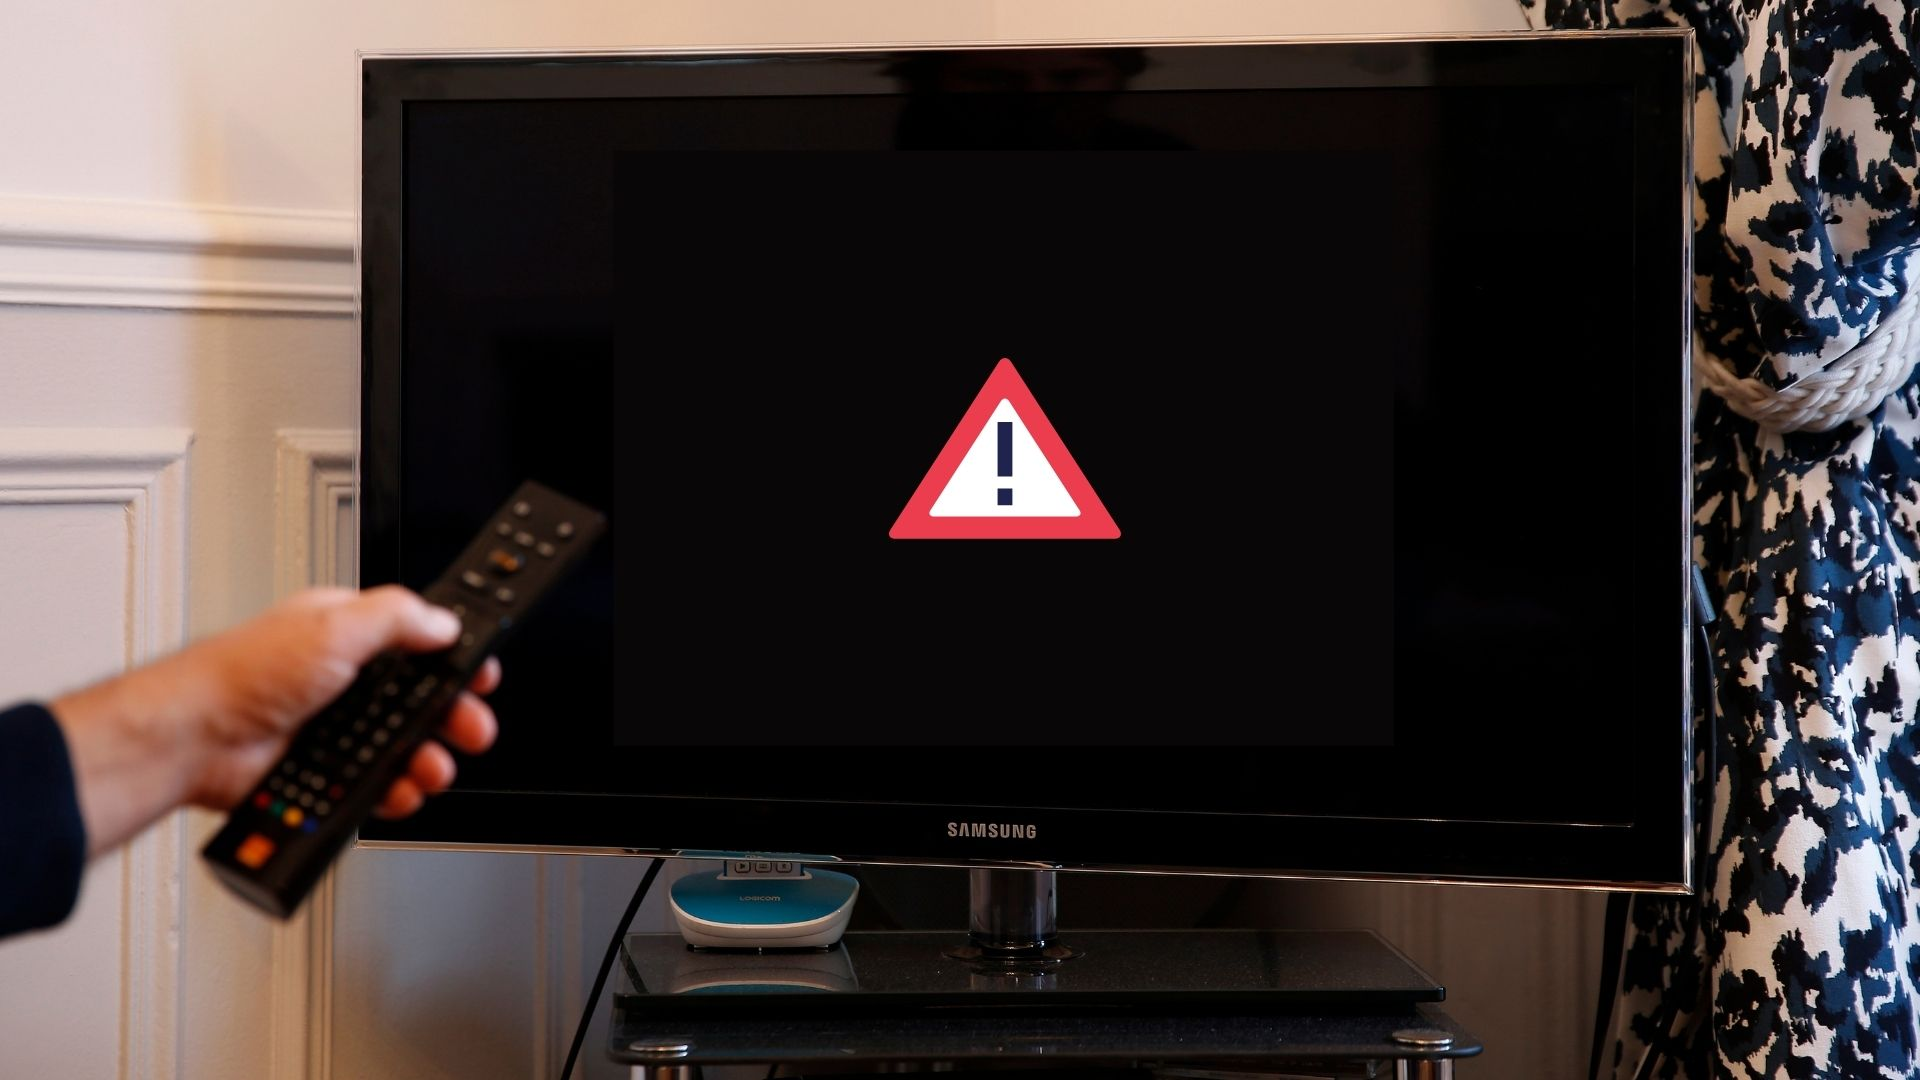 Your Streaming Binge Could Soon Be Interrupted by Emergency Alerts and Tests, Live Streaming Market Could Exceed $245 Billion By 2027, and other top news